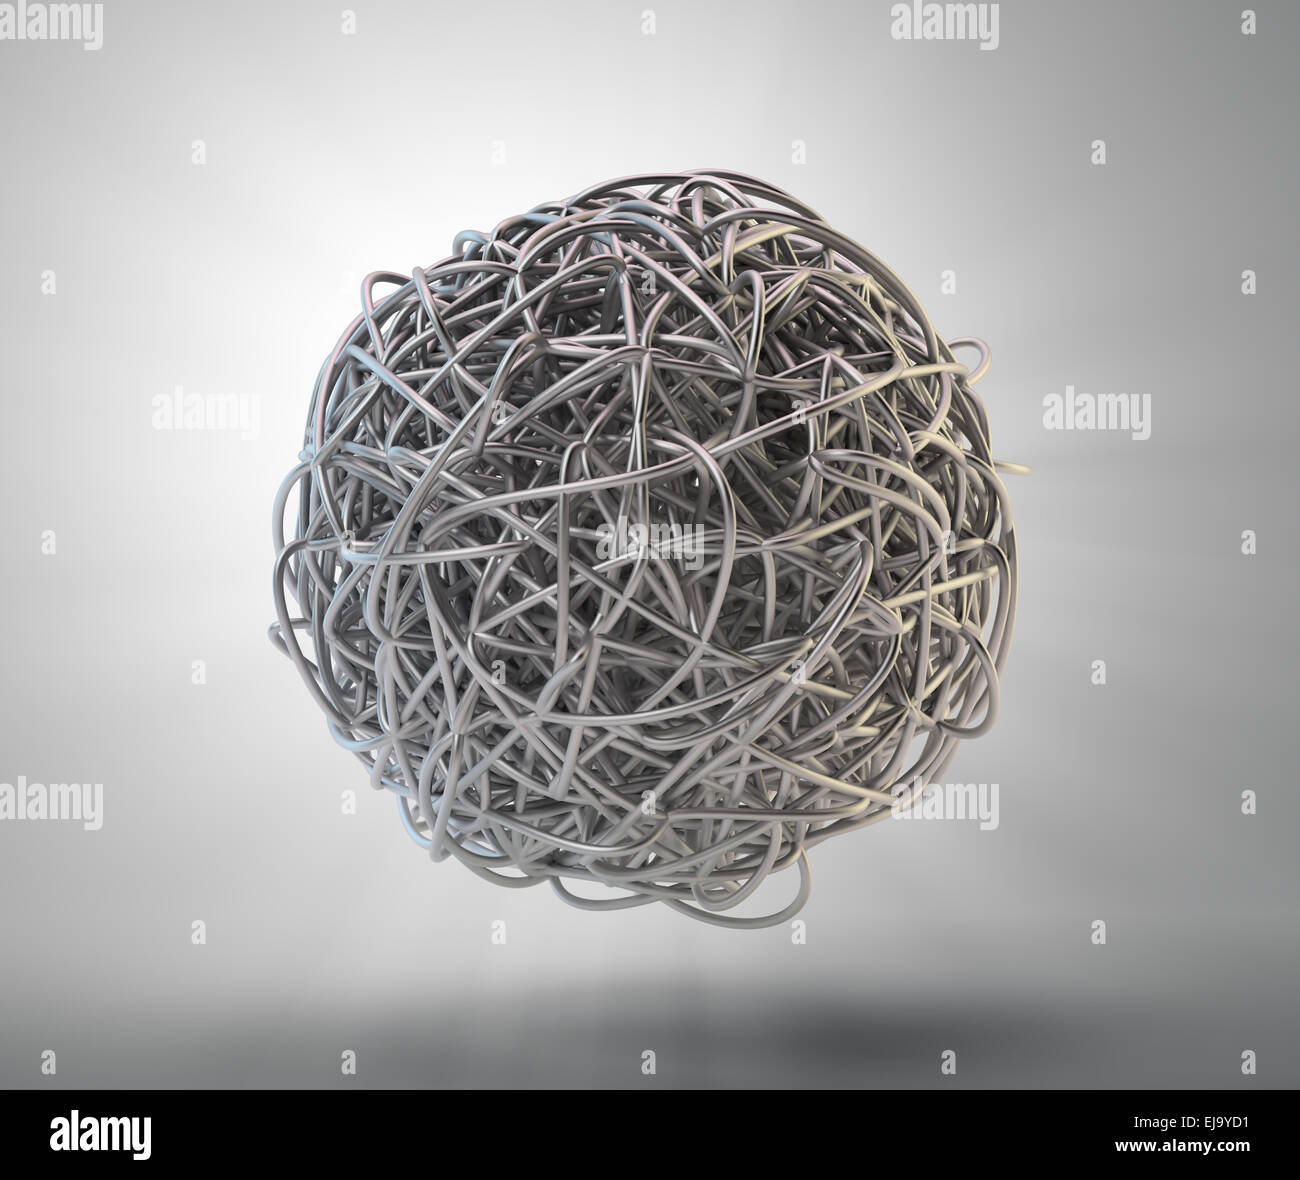 An abstract 3d rendering of tangled metal splines - Stock Image